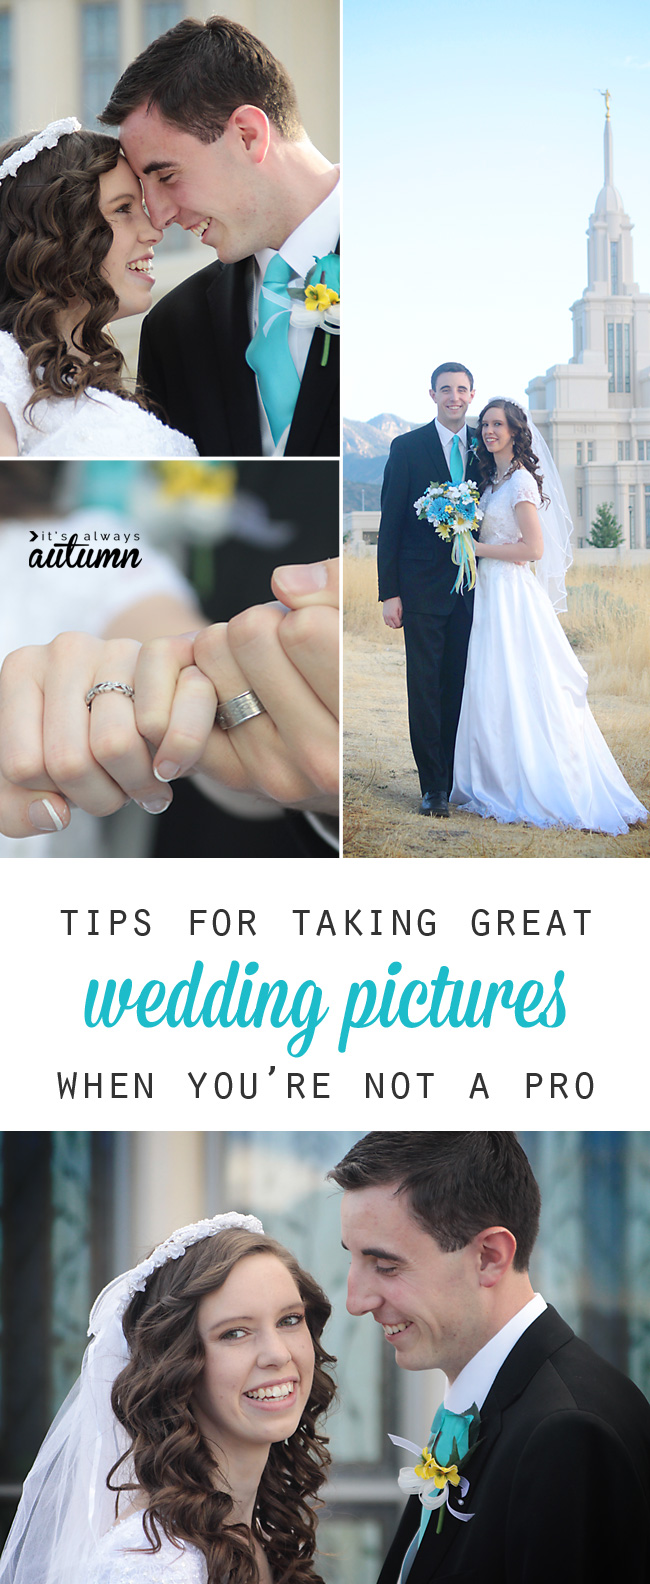 great tips on how to take great wedding photos even if you're not a pro photographer - I like #2! 9 wedding photography tips.